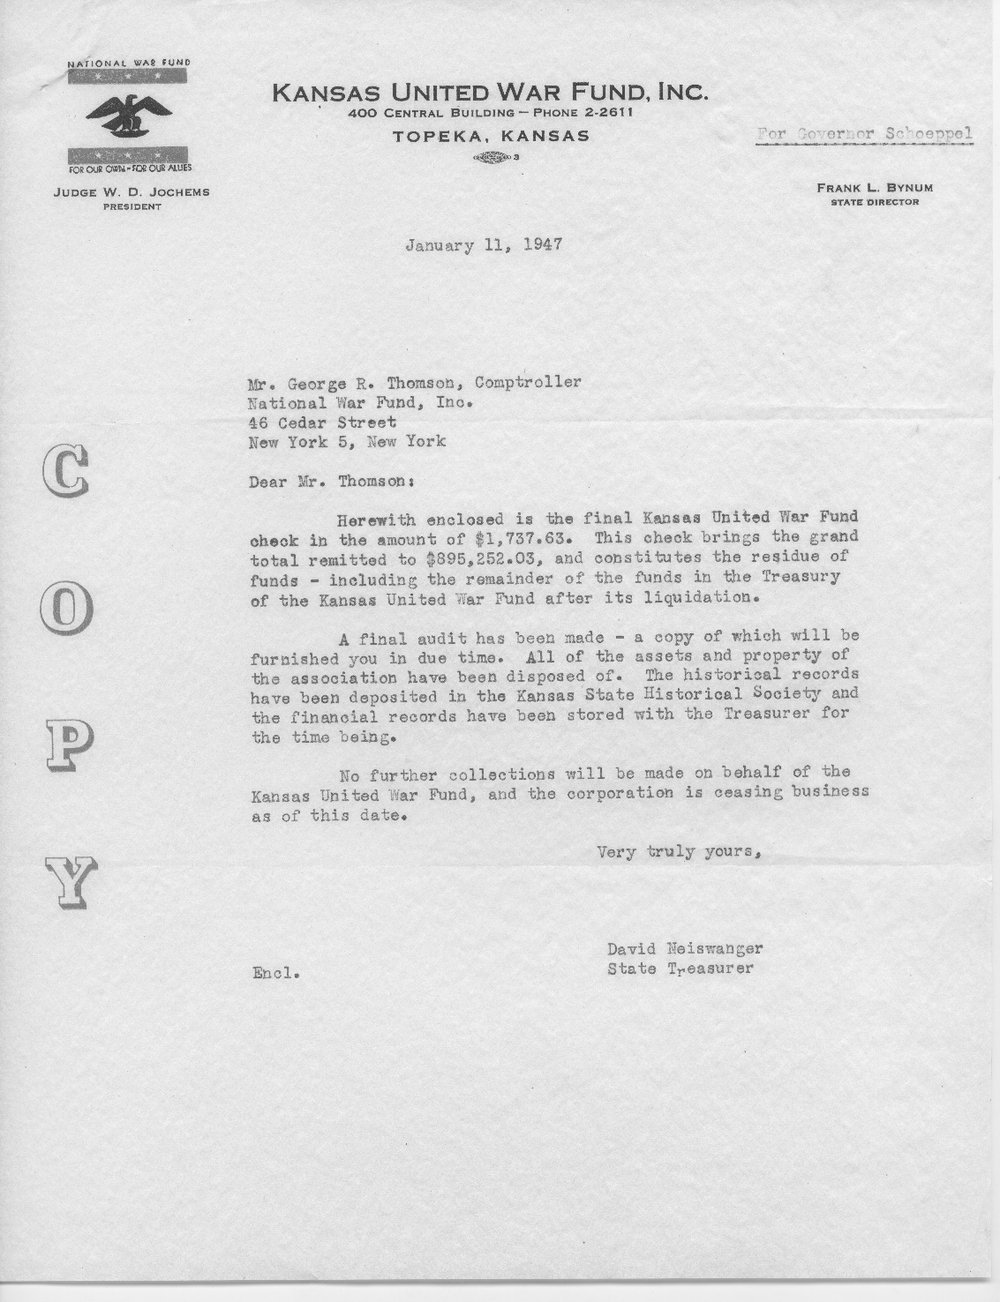 W.D. Jochems to Governor Andrew Schoeppel - 2